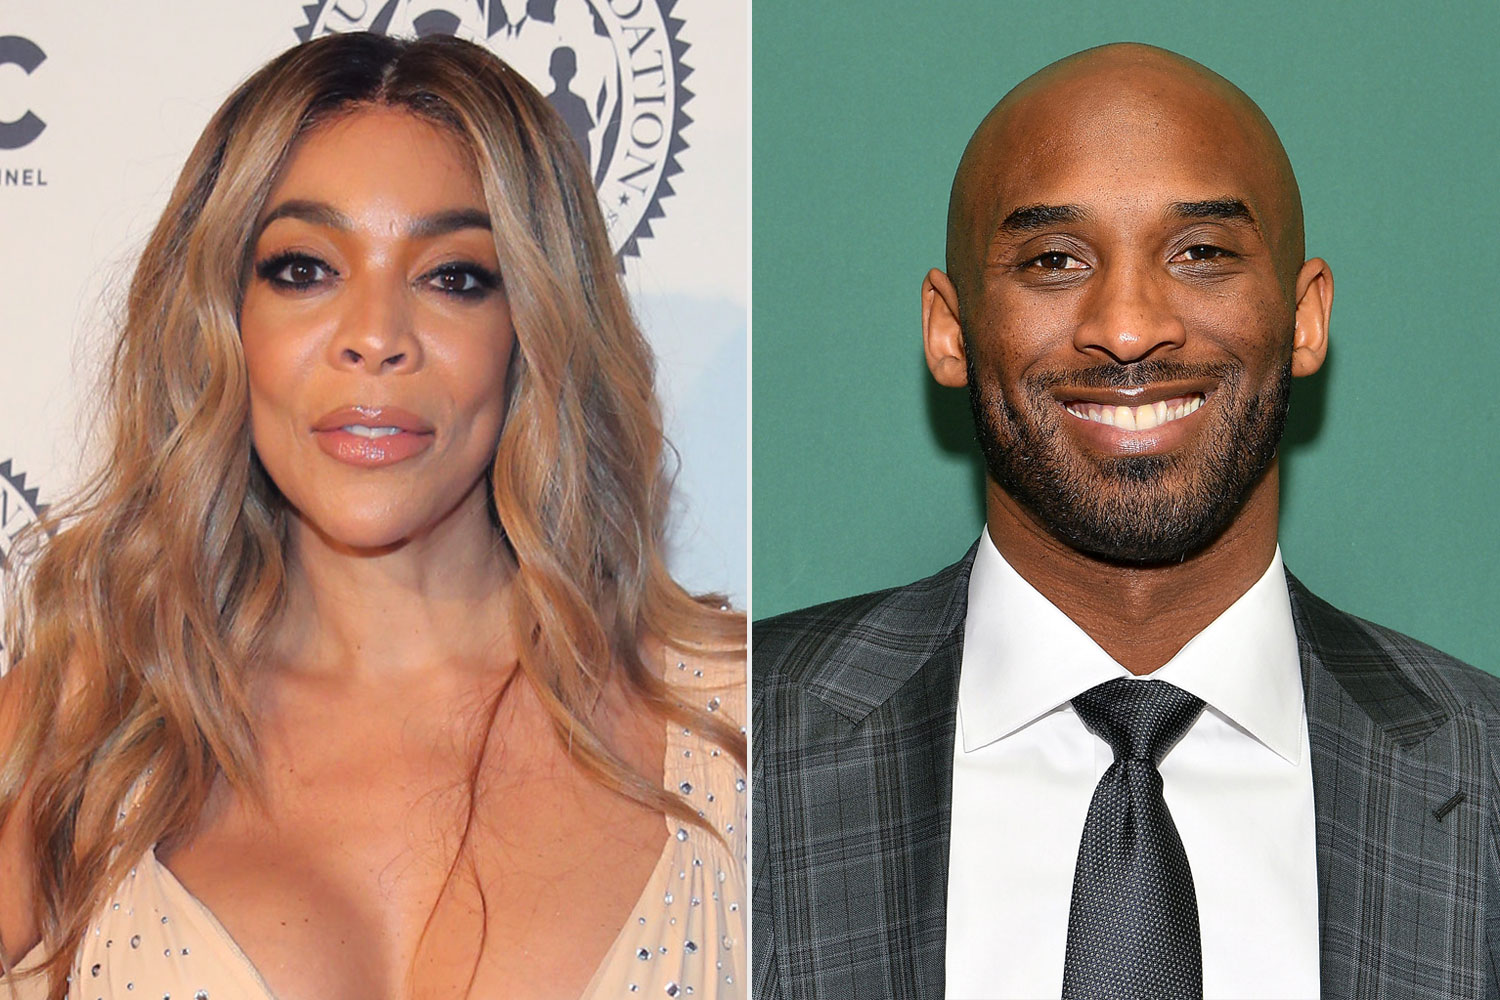 """""""wendy-williams-breaks-down-in-tears-while-talking-about-kobe-bryant-after-almost-not-doing-her-talk-show-following-his-tragic-passing"""""""